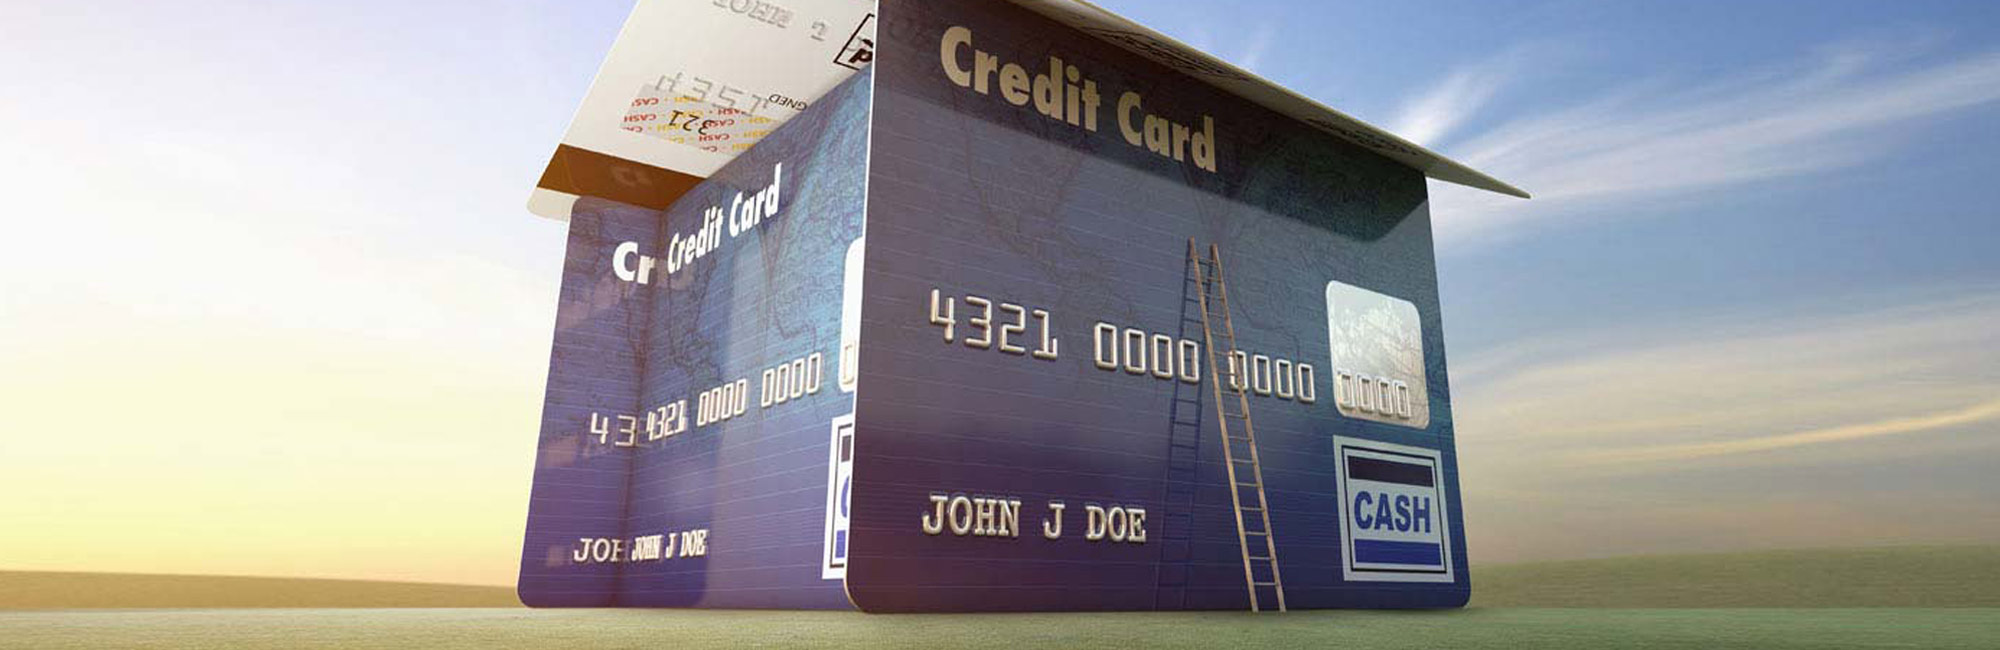 How to build credit with no credit.